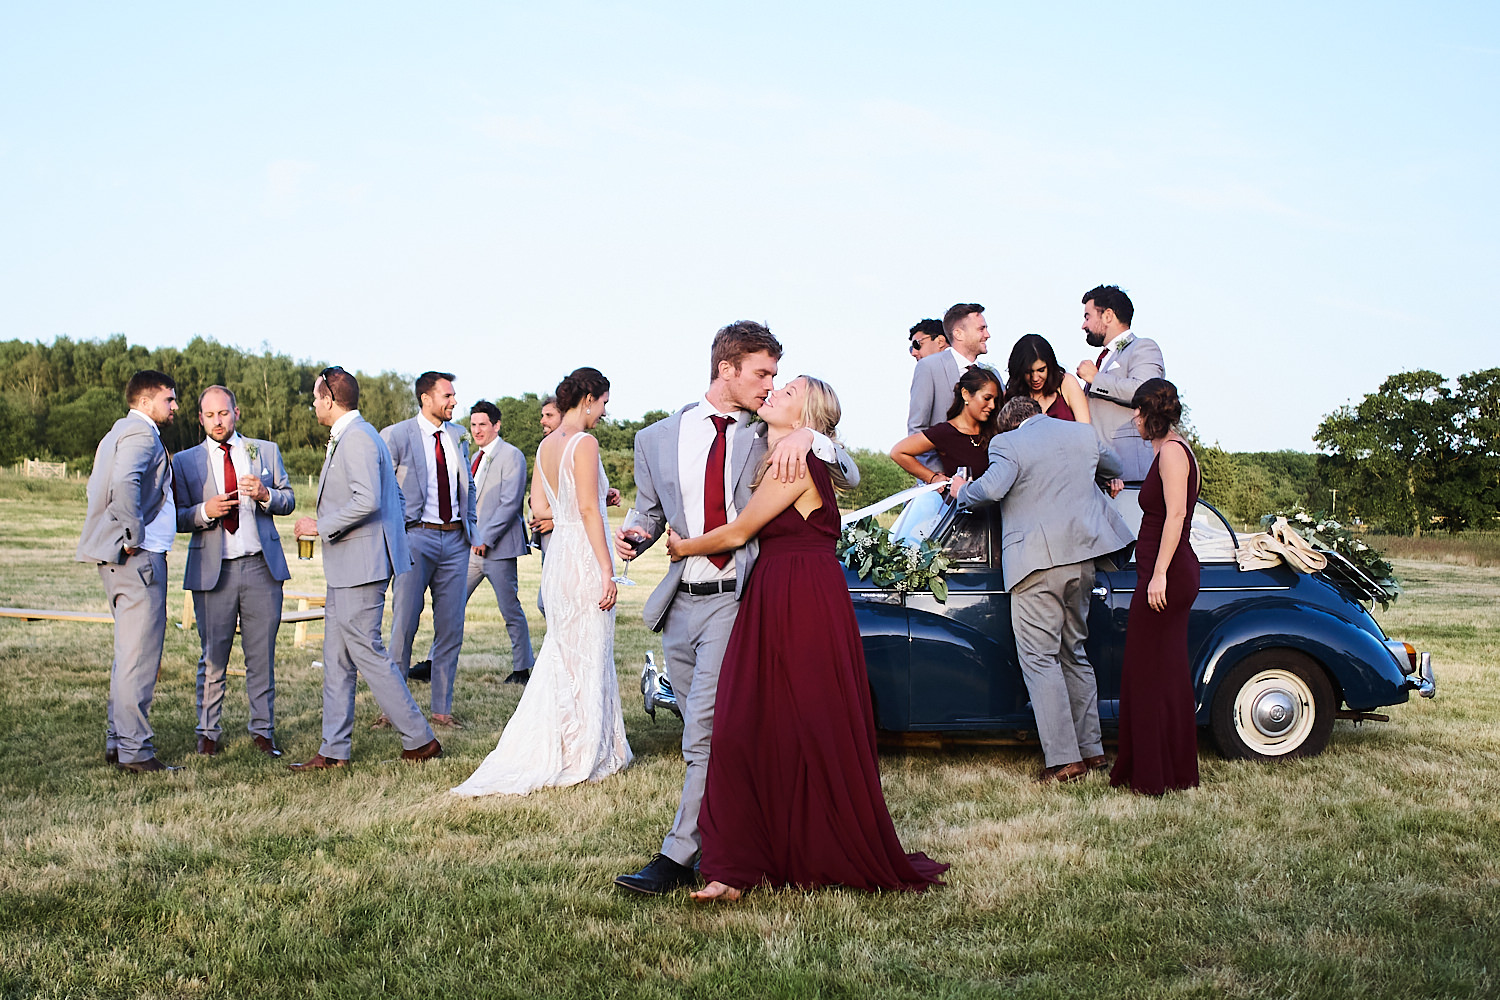 Bridal party climb out of convertible in a field